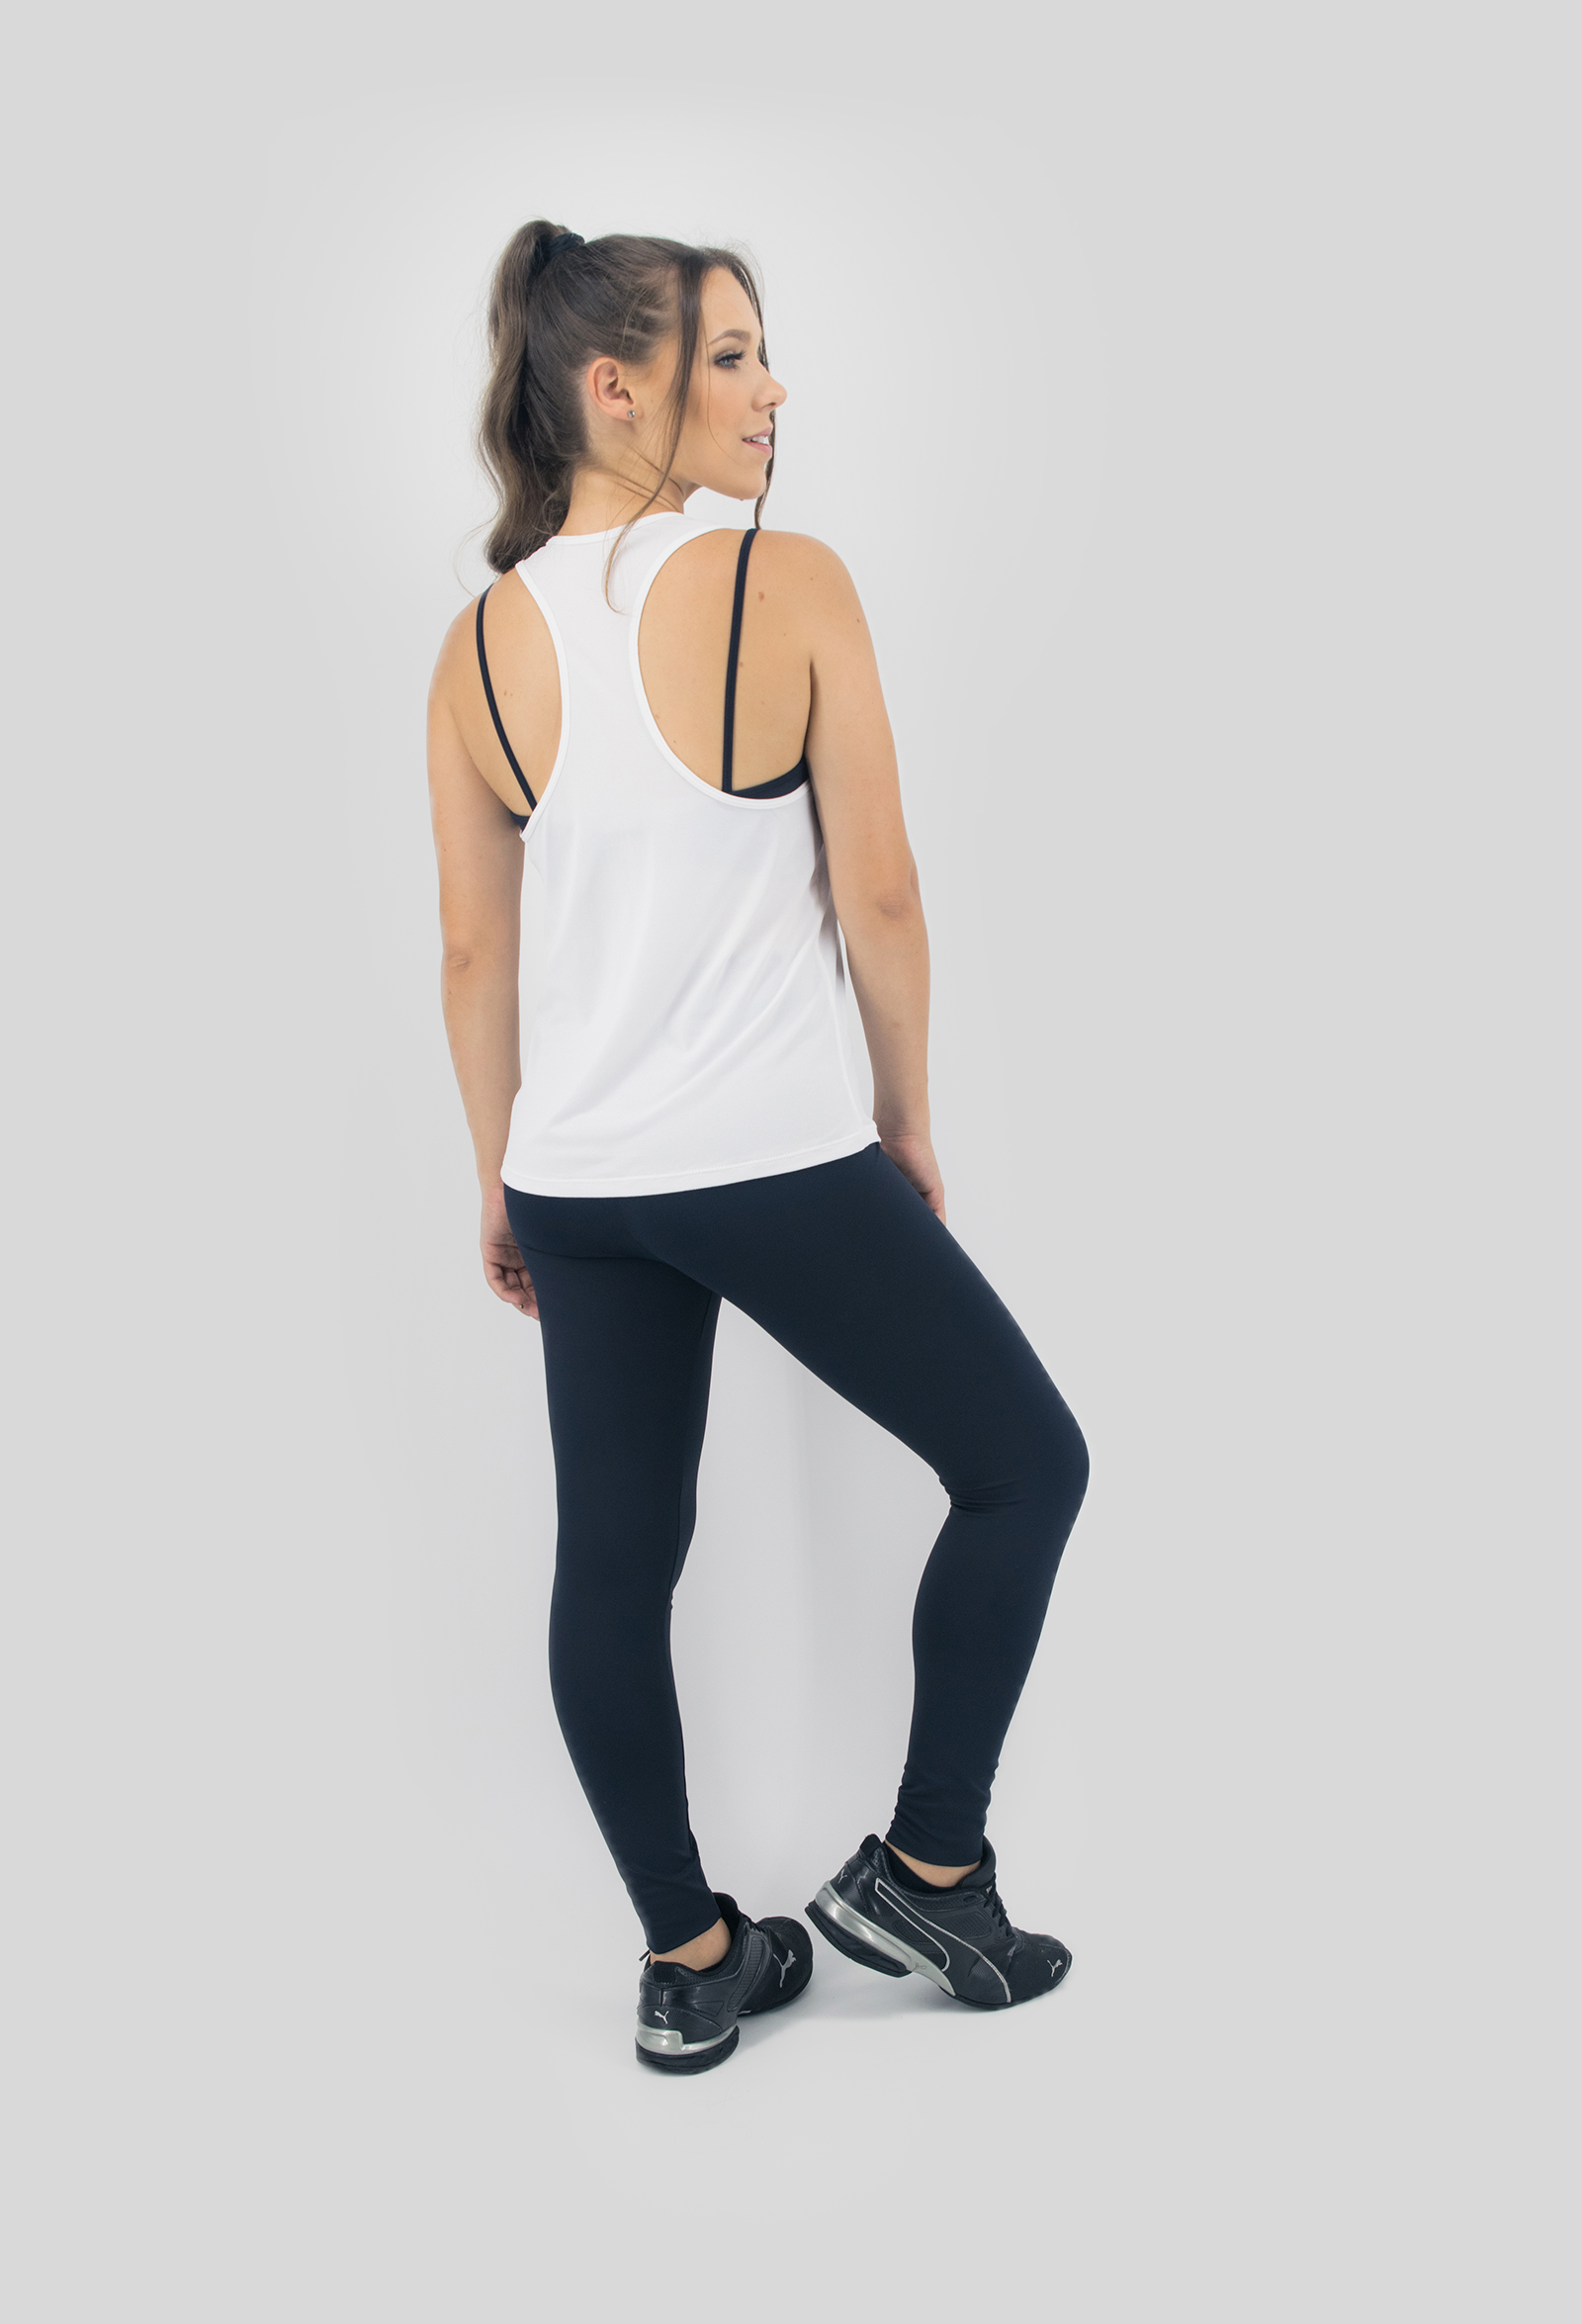 Regata NKT Branca, Coleção Move Your Body - NKT Fitwear Moda Fitness